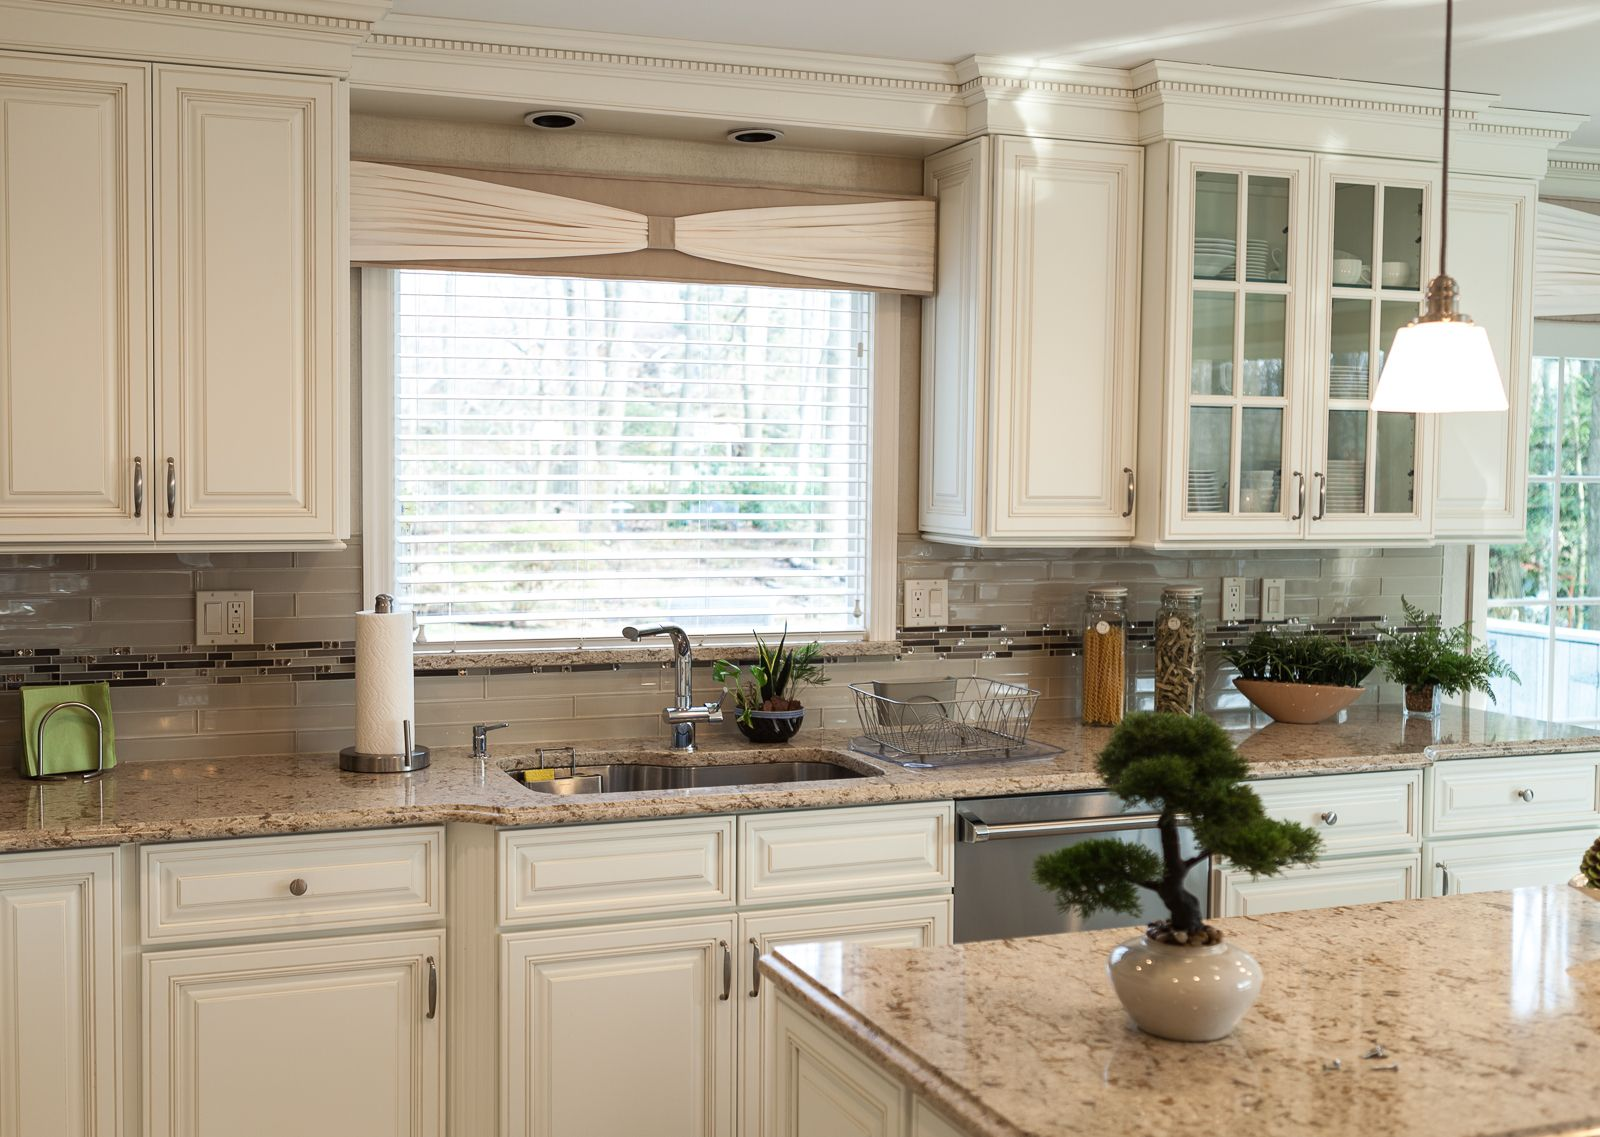 This remodel featured Shiloh Cabinetry with Cambria